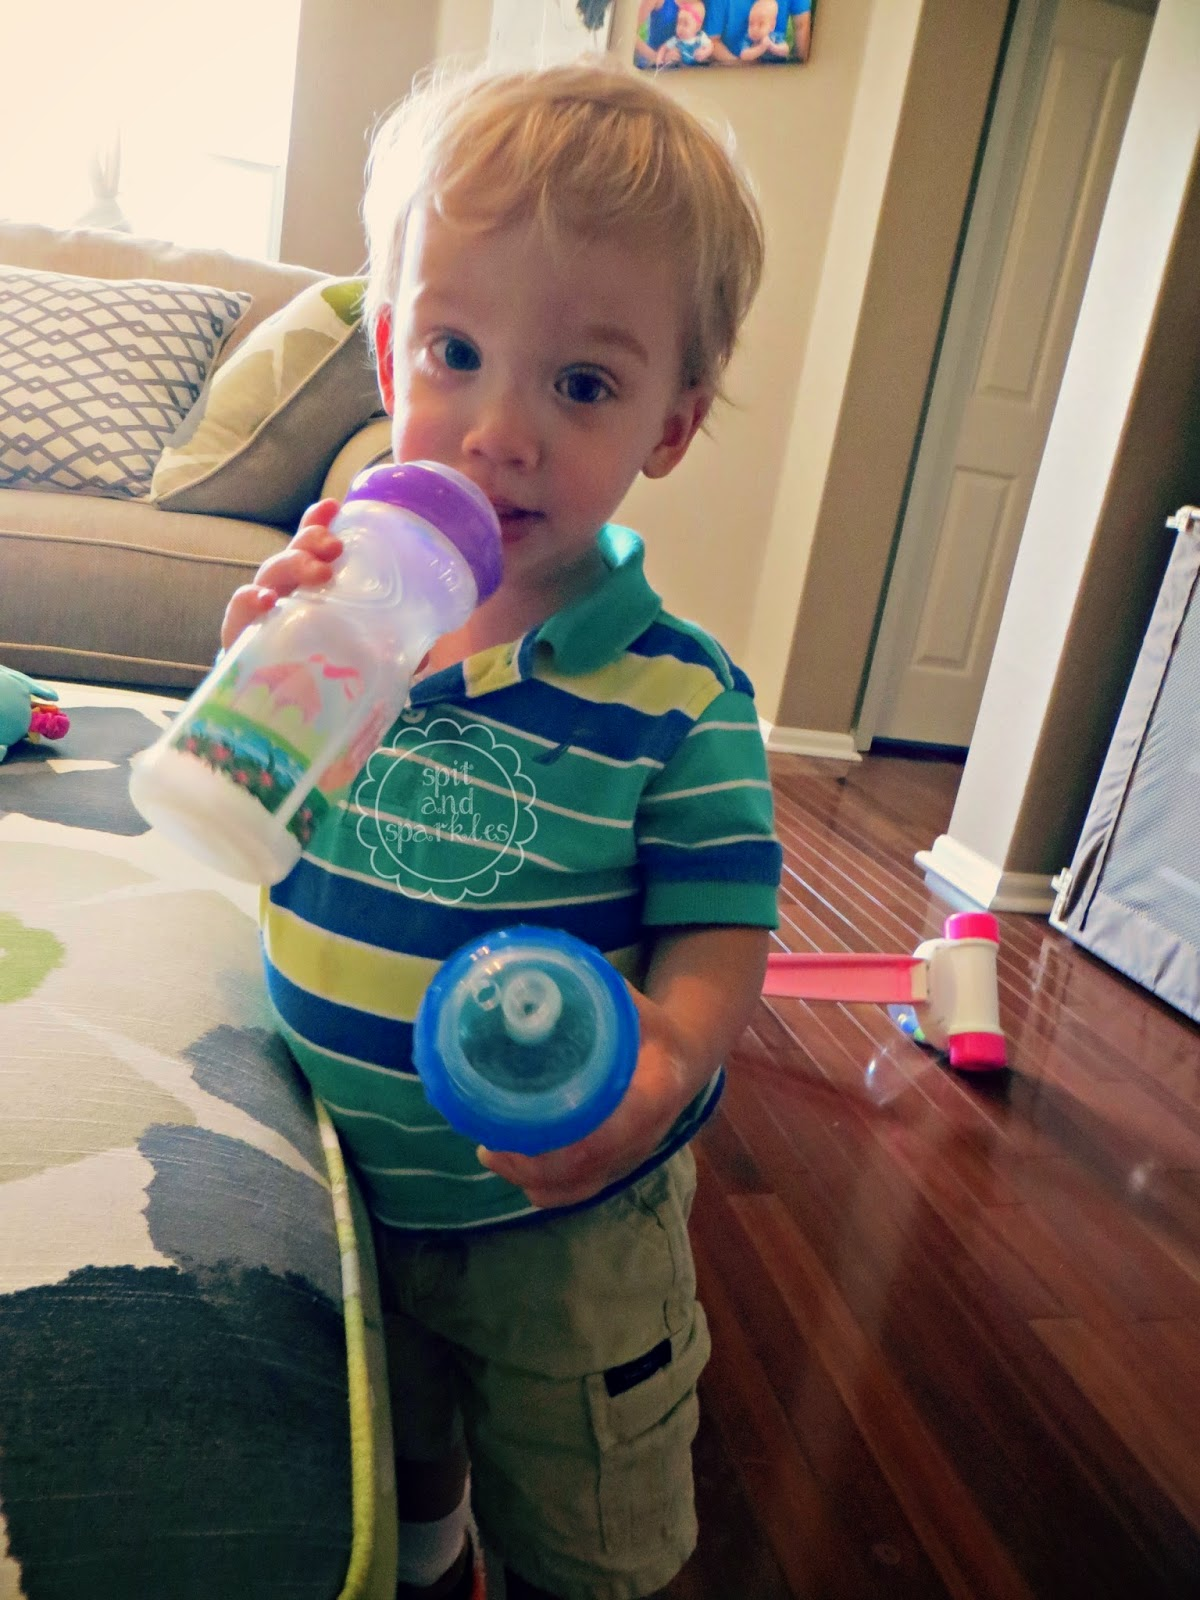 Product Review: Nuby Printed Sports Sipper cups. #review #Nuby #toddlers